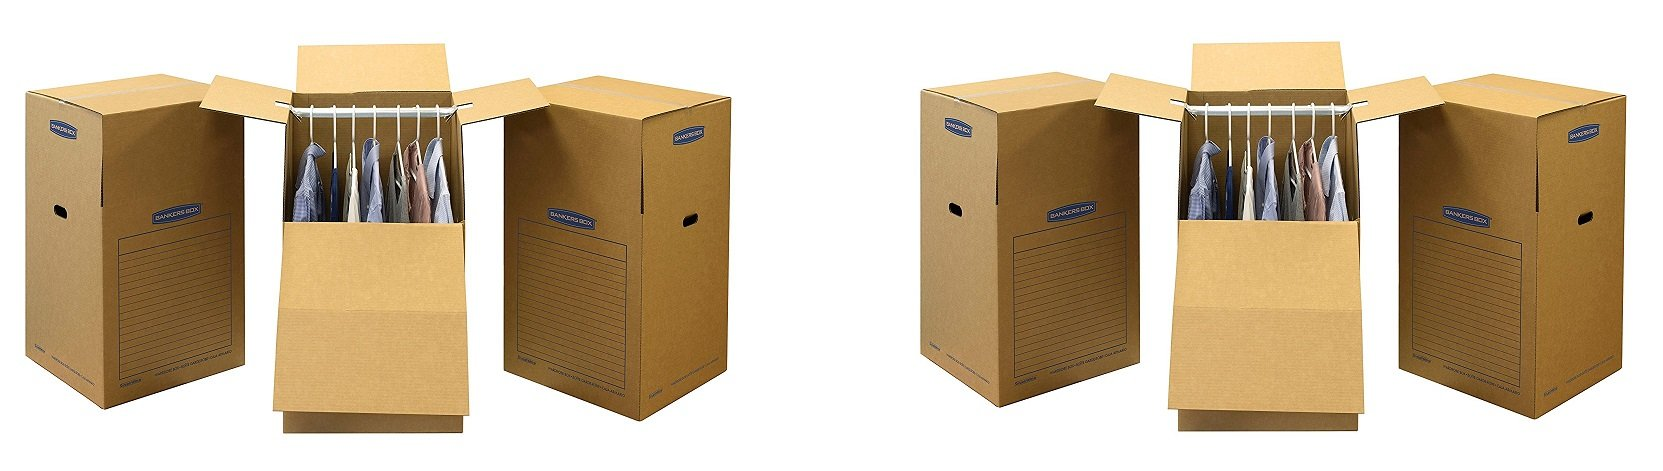 "Bankers Box SmoothMove Wardrobe and Moving Boxes, 24"" x 24"" x 40"", 3 Pack (7711001) (6-PACK)"